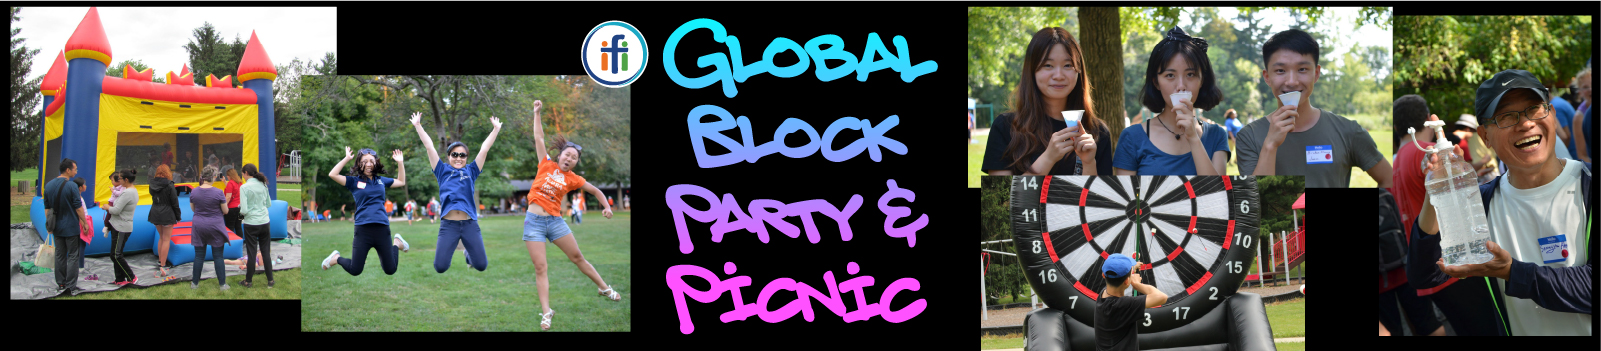 Global Block Party and Picnic